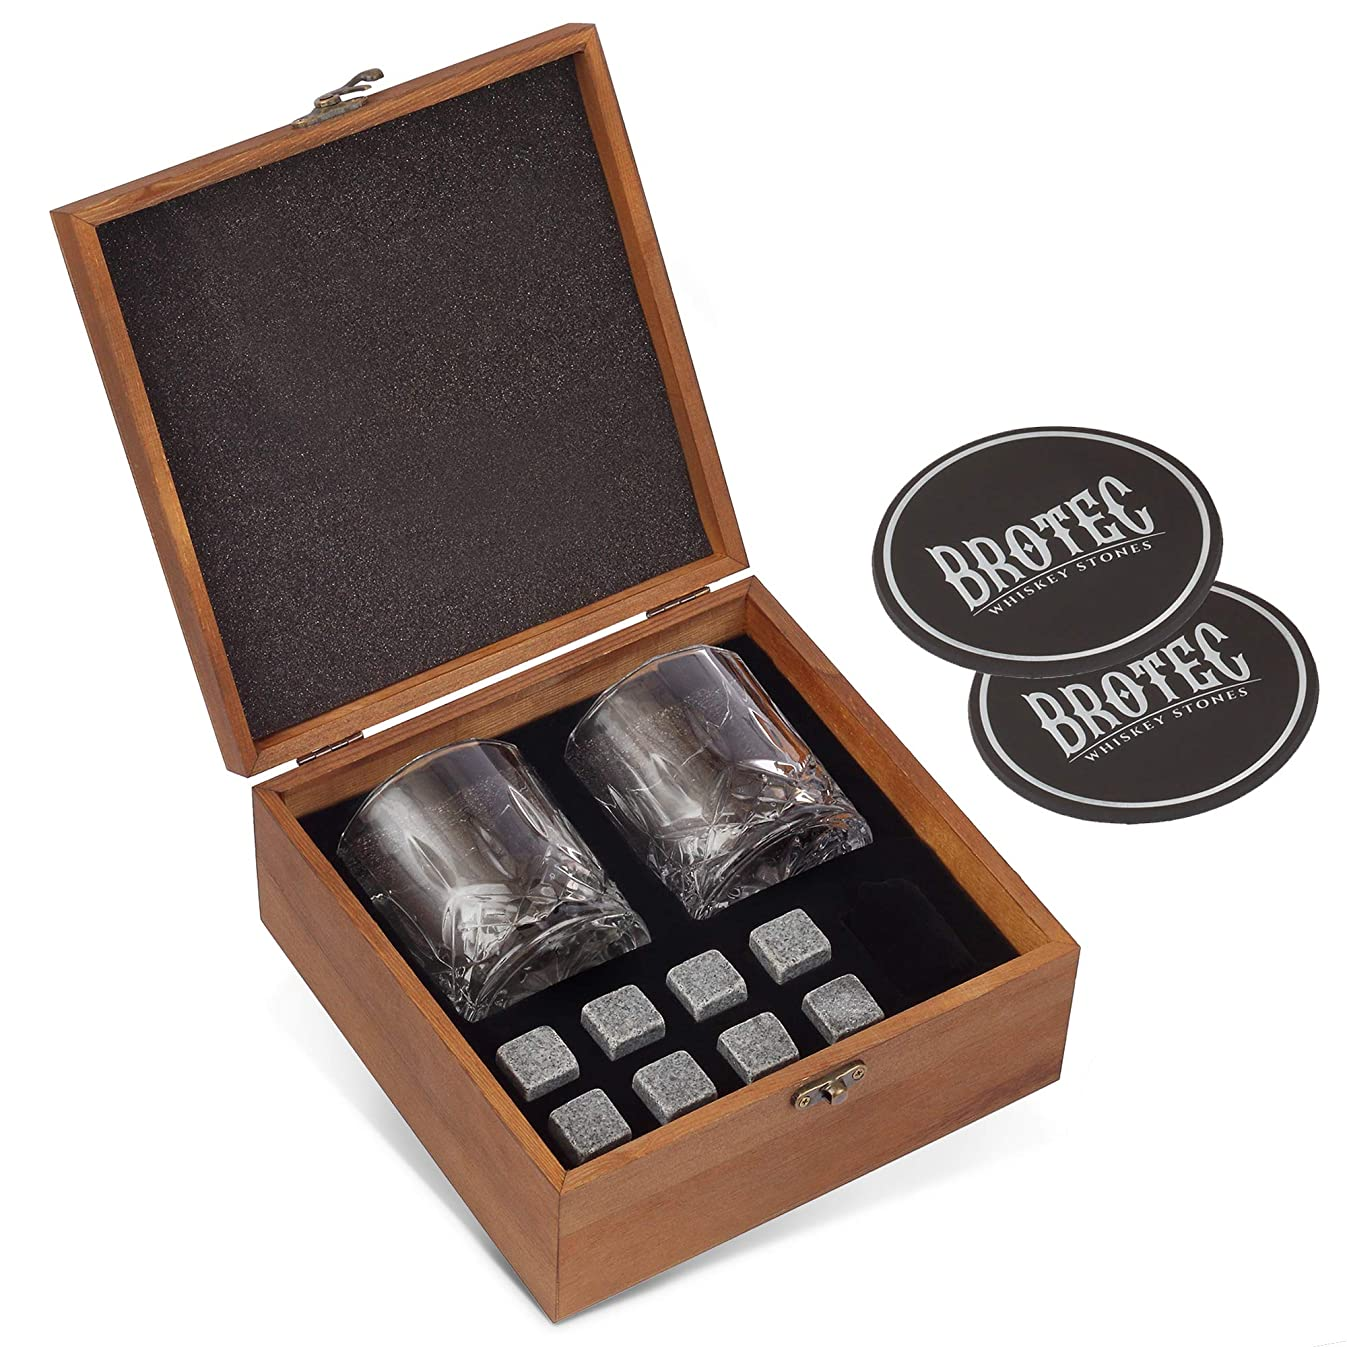 Whiskey Stones Gift Set - 8 Granite Chilling Whisky Rocks - 2 Large Crystal Whiskey Drinking Glasses - 2 Coasters in Handmade Wooden Box – Premium Bar Accessories for the Best Tasting Beverages